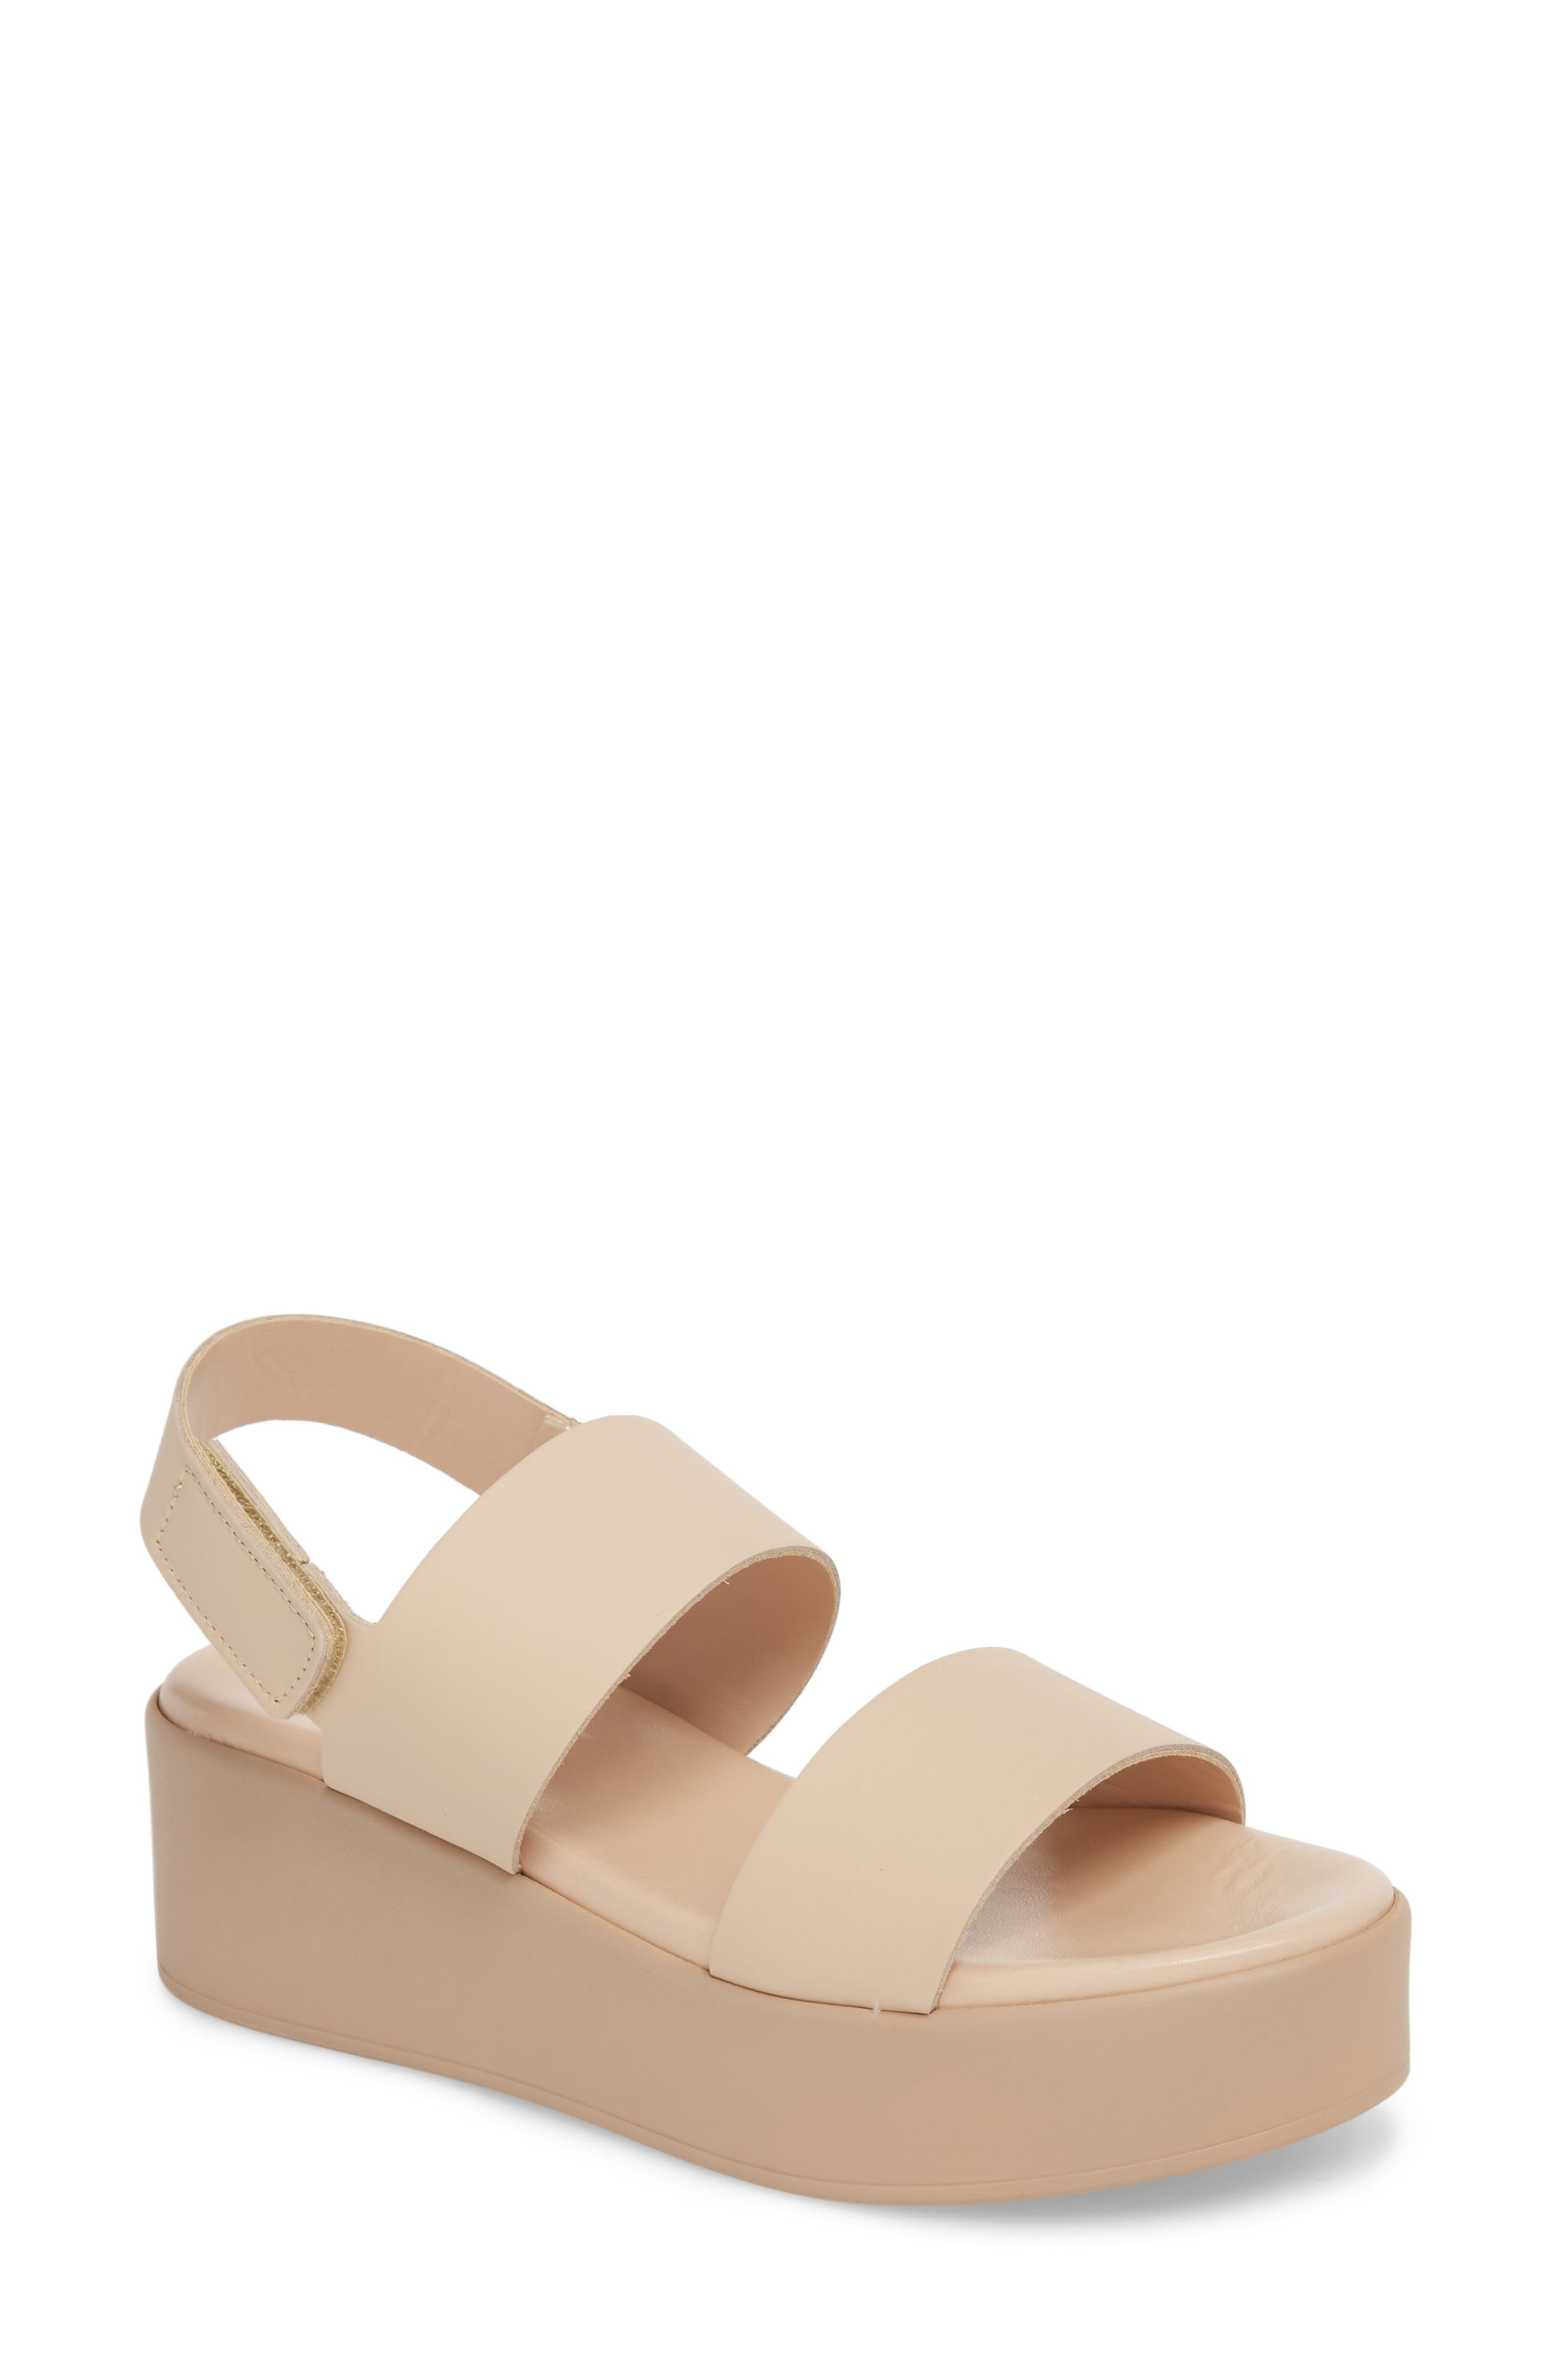 Rachel Platform Wedge Sandal,                             Main thumbnail 1, color,                             250